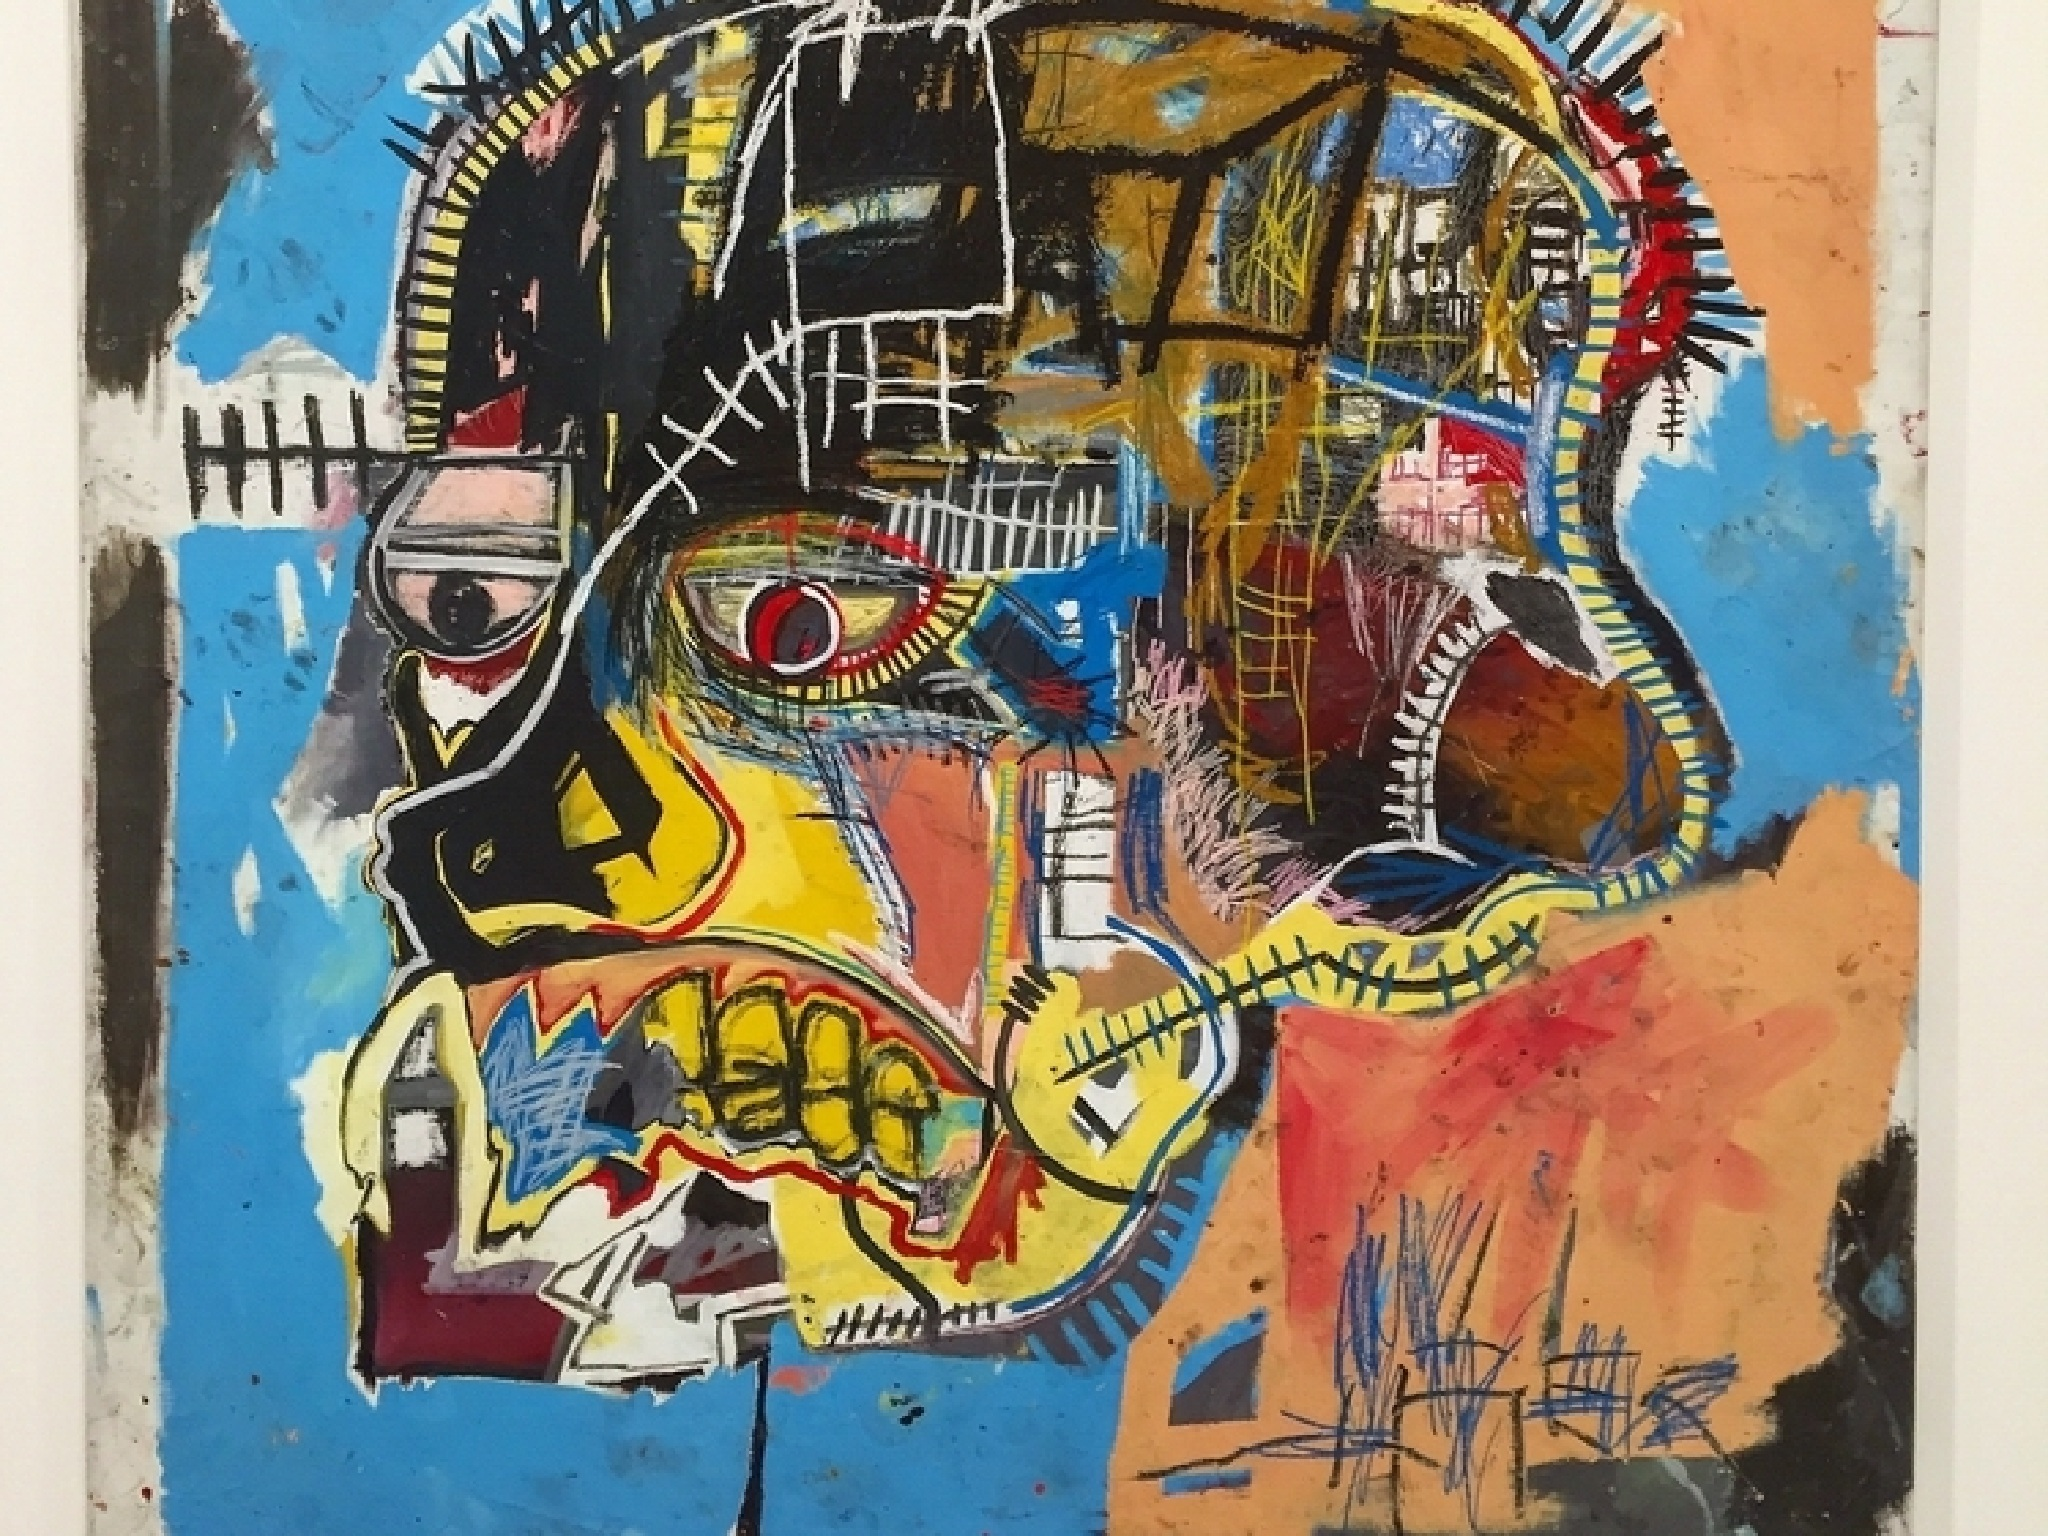 See more than 100 Basquiat artworks in this free virtual exhibition